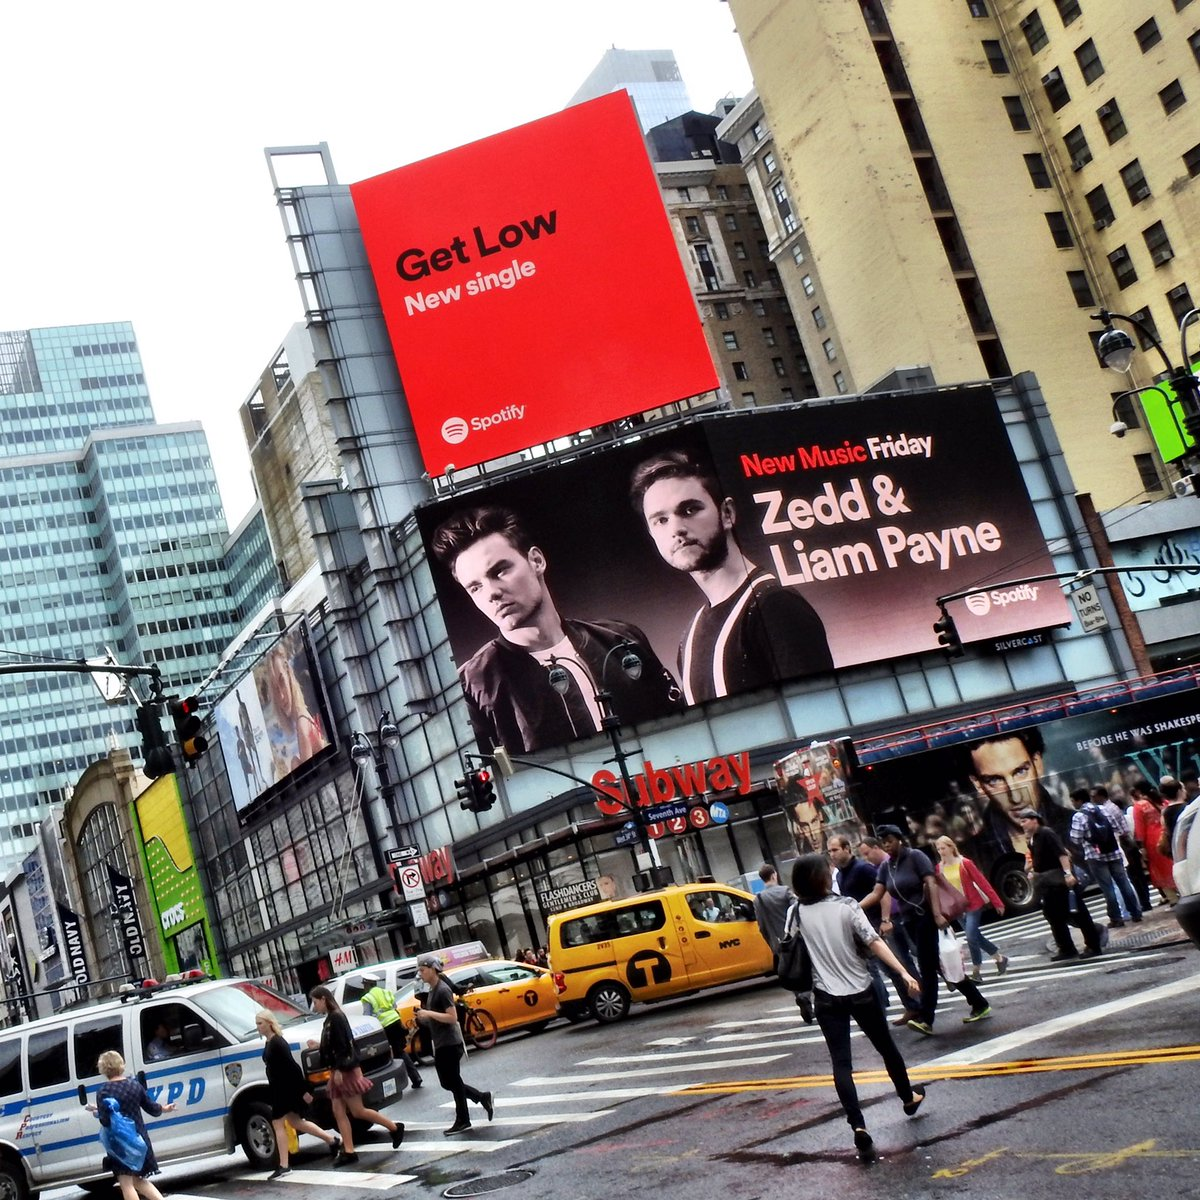 Loving the #GetLow billboard up in Times Square 👌🏼